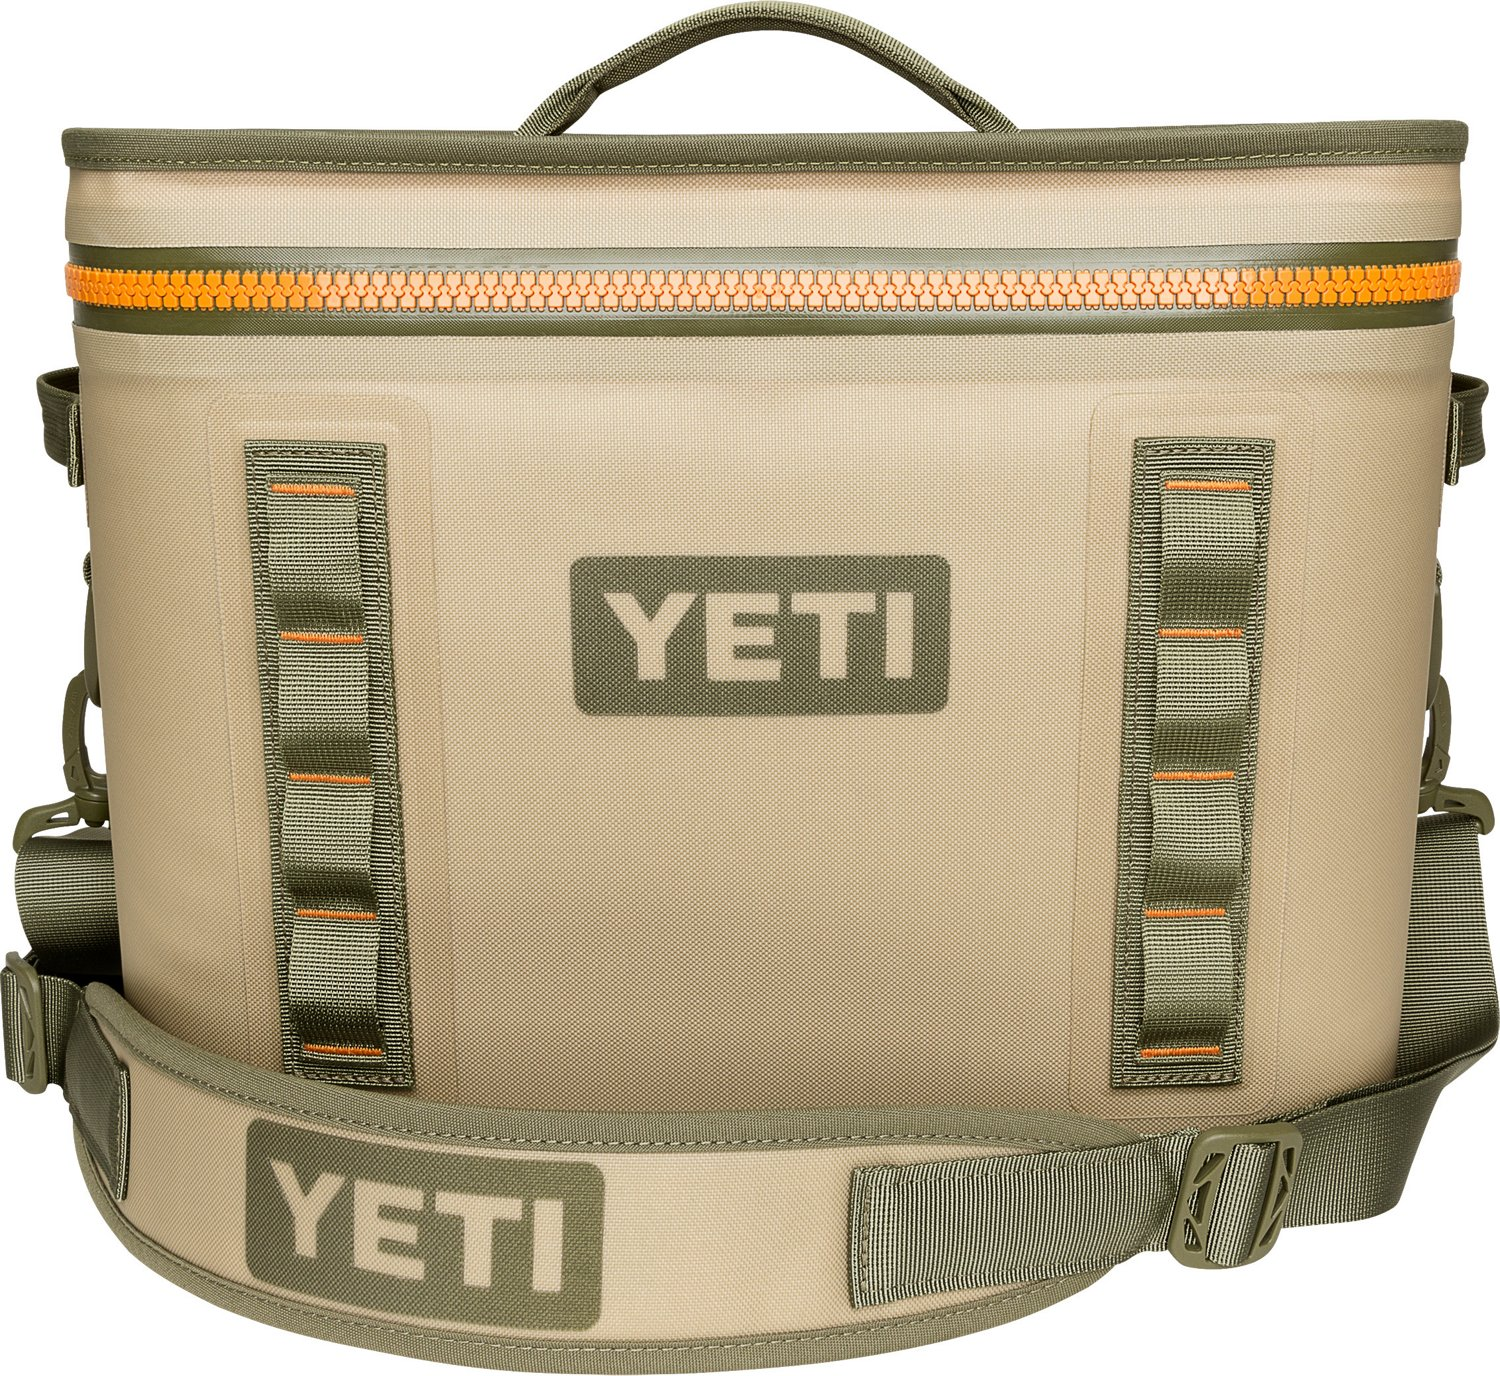 02fbc984c5cb Display product reviews for YETI Hopper Flip 18 Cooler